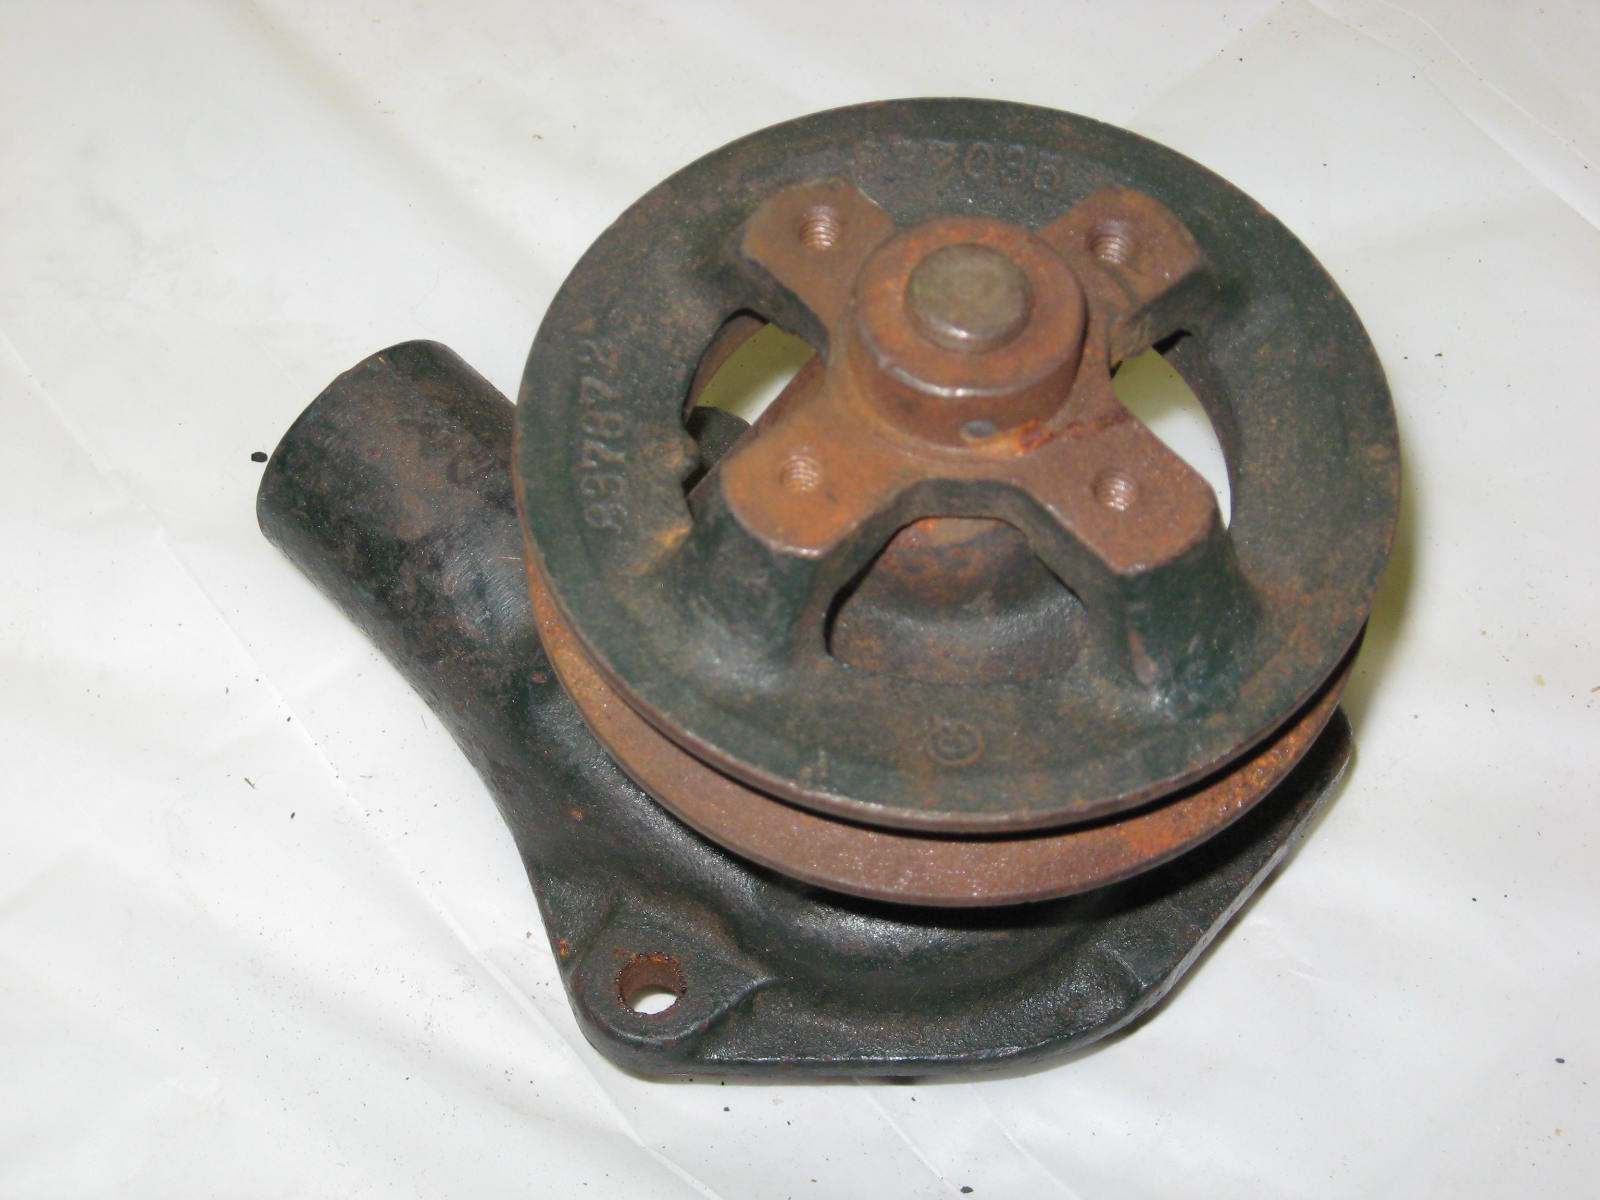 1935 Chevrolet water pump NOS (a 837608nw)      Upload Image     Link Online      Back to List     Save     Next»  You